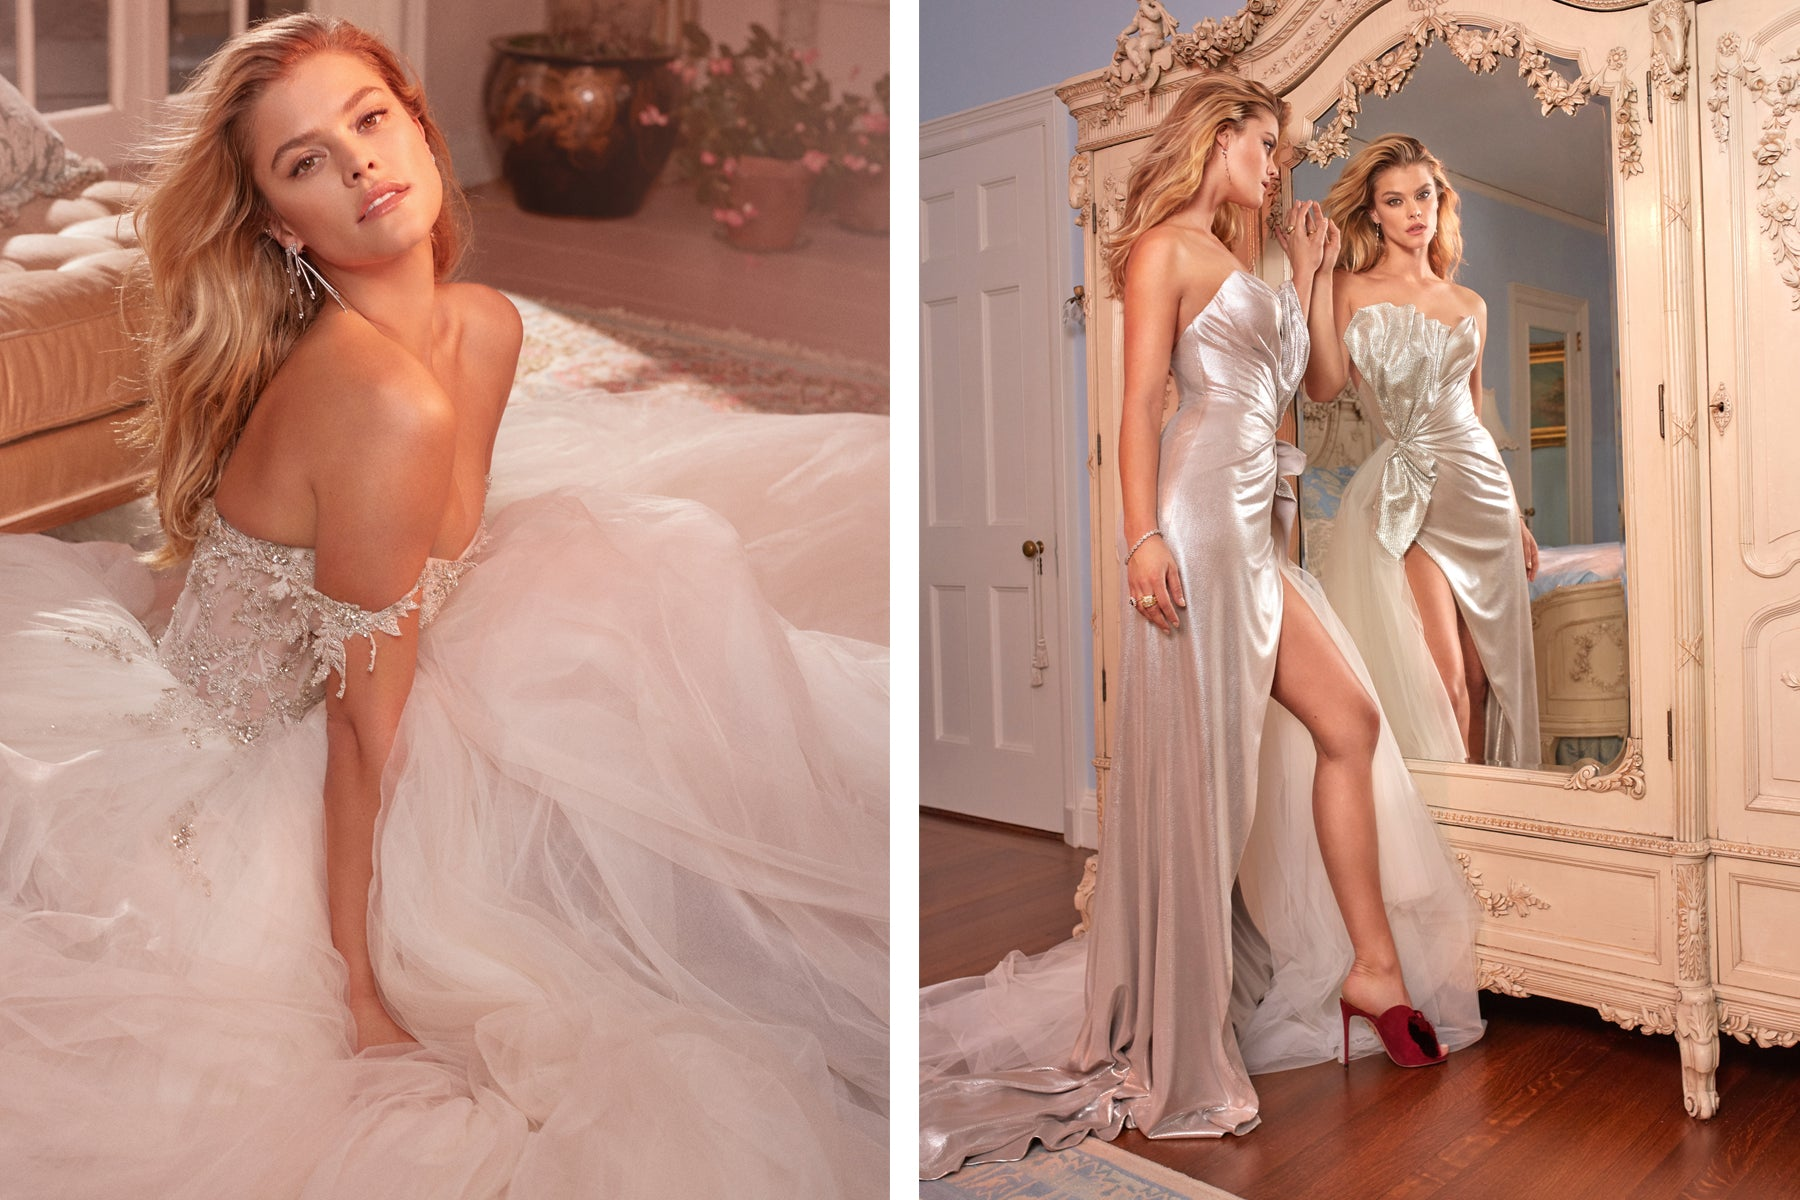 Eternal_Bridal_Wedding_Dress_Galia_Lahav_Haute_Couture_Queen_of_Hearts_Arden